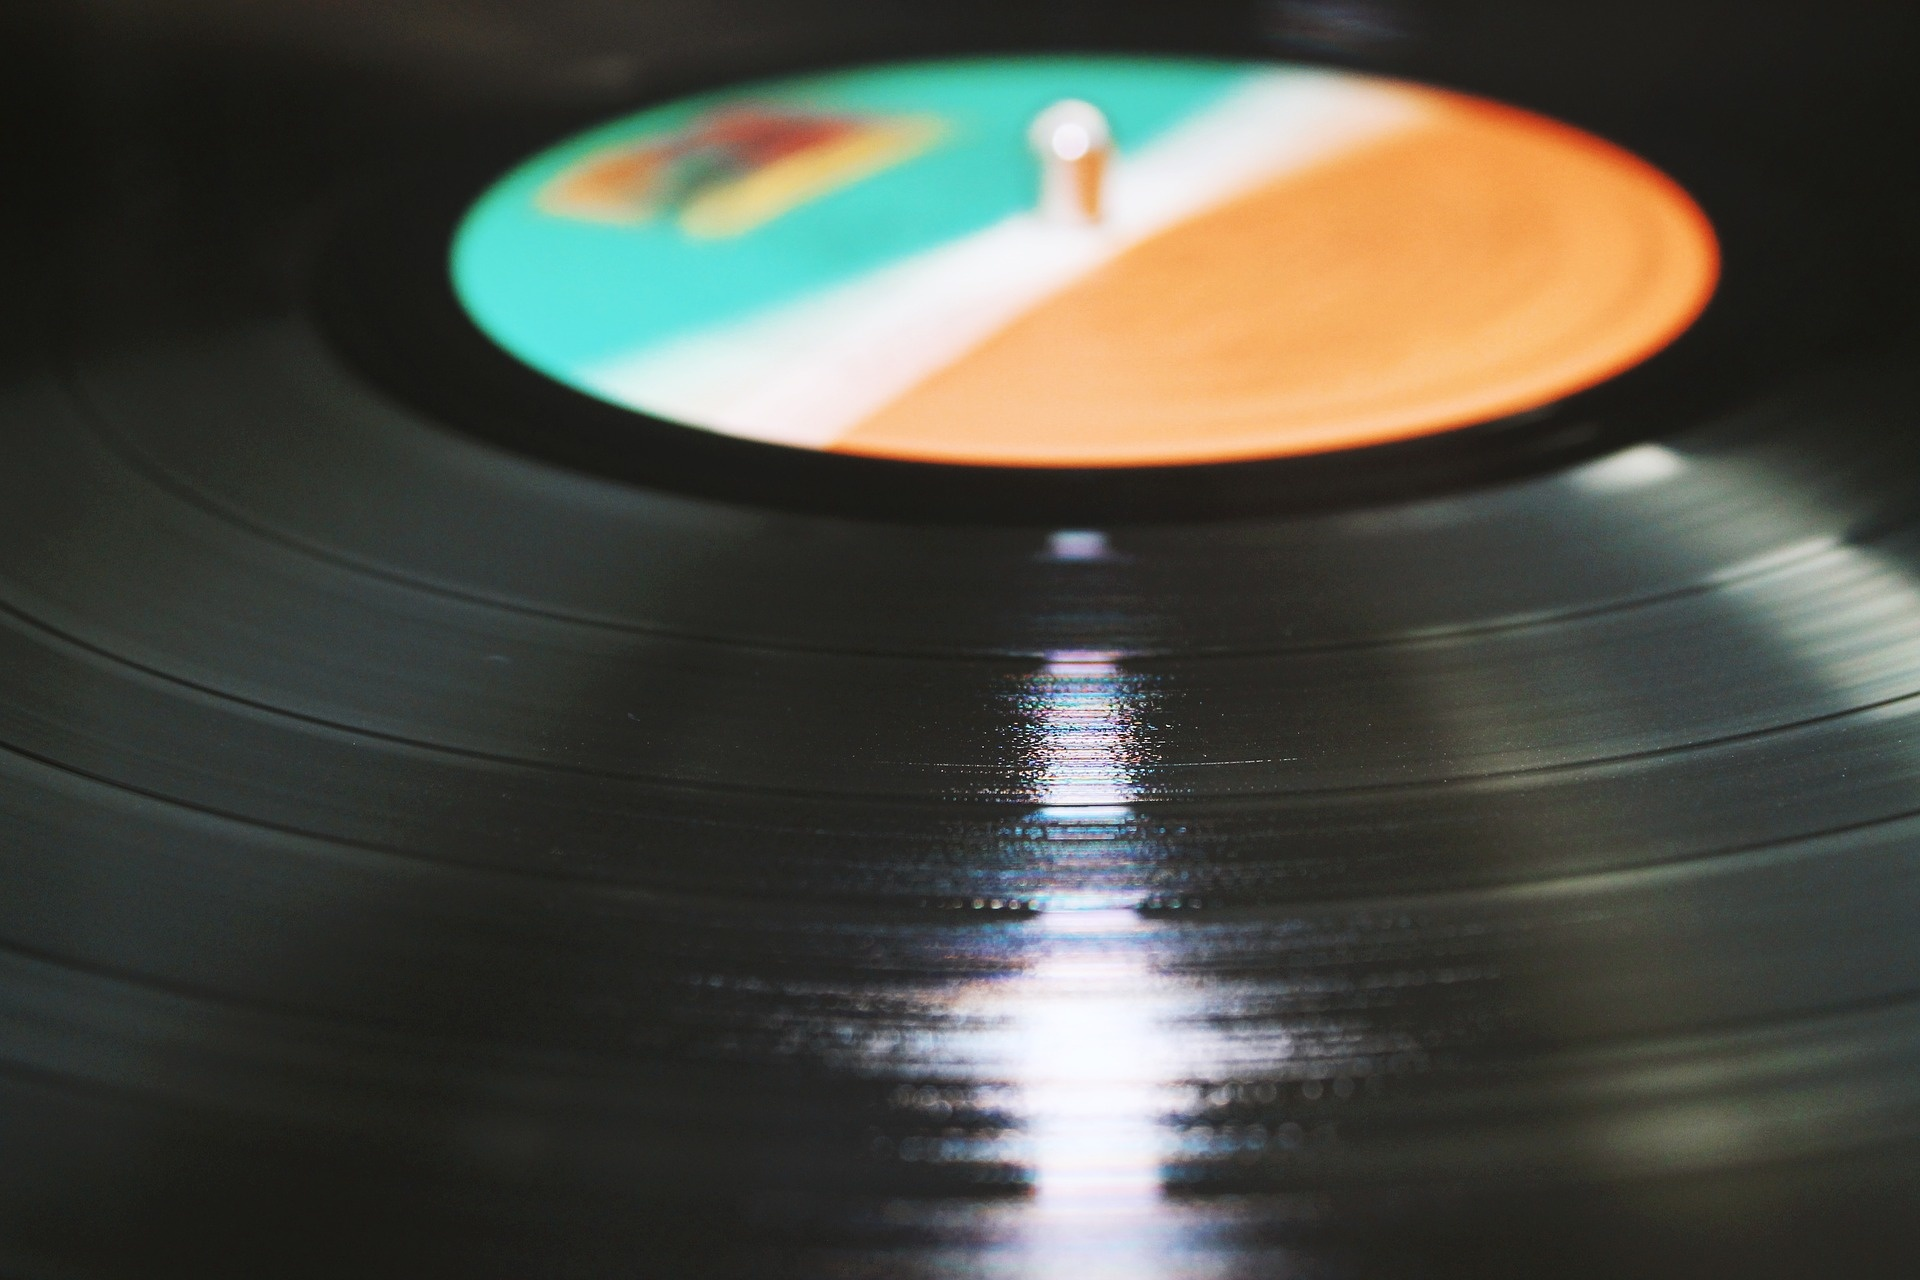 How to Listen to Your Old Music While Self-Isolating